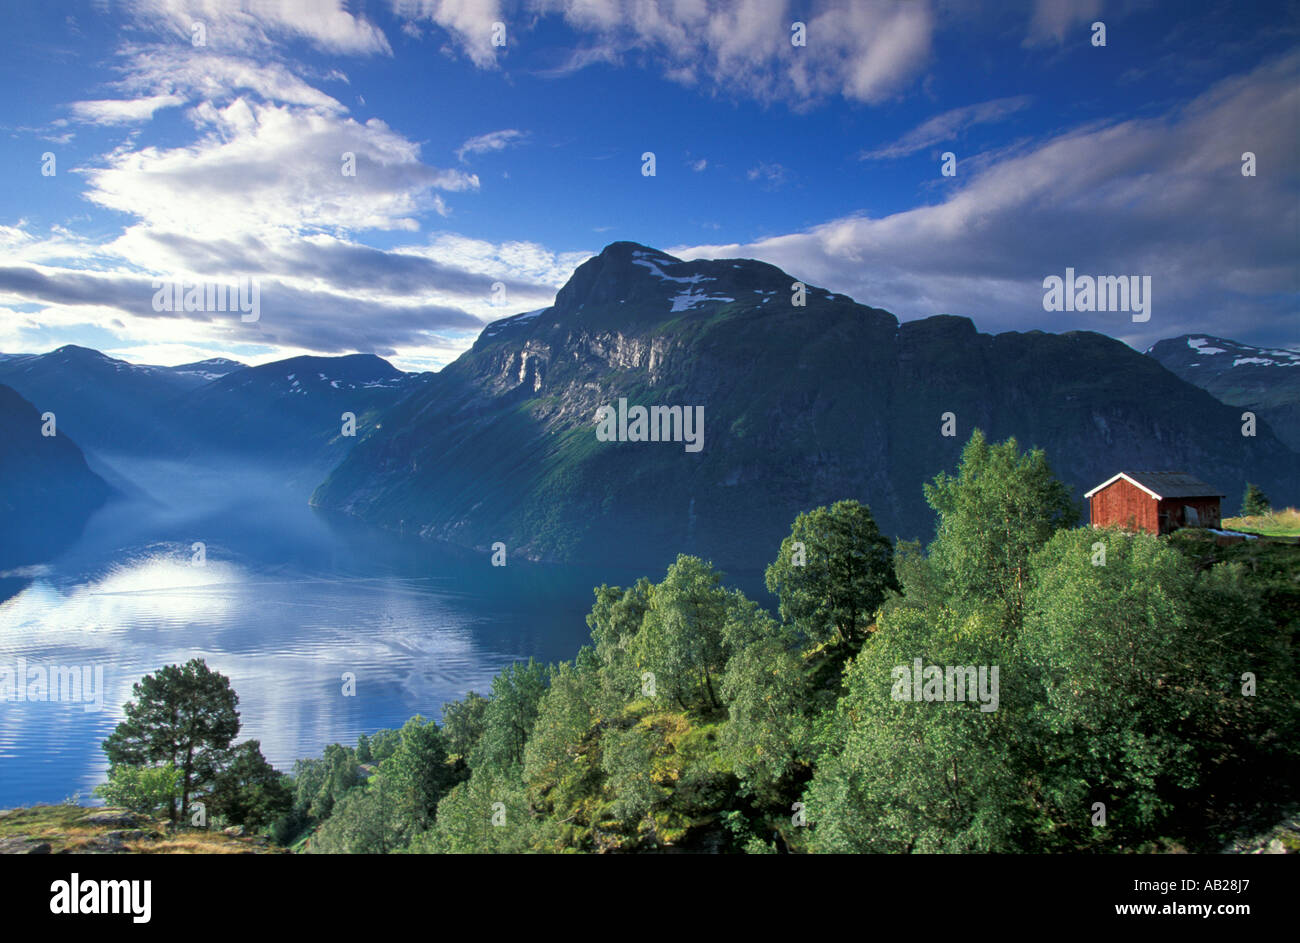 Geiranger Fjord, Norway - Stock Image